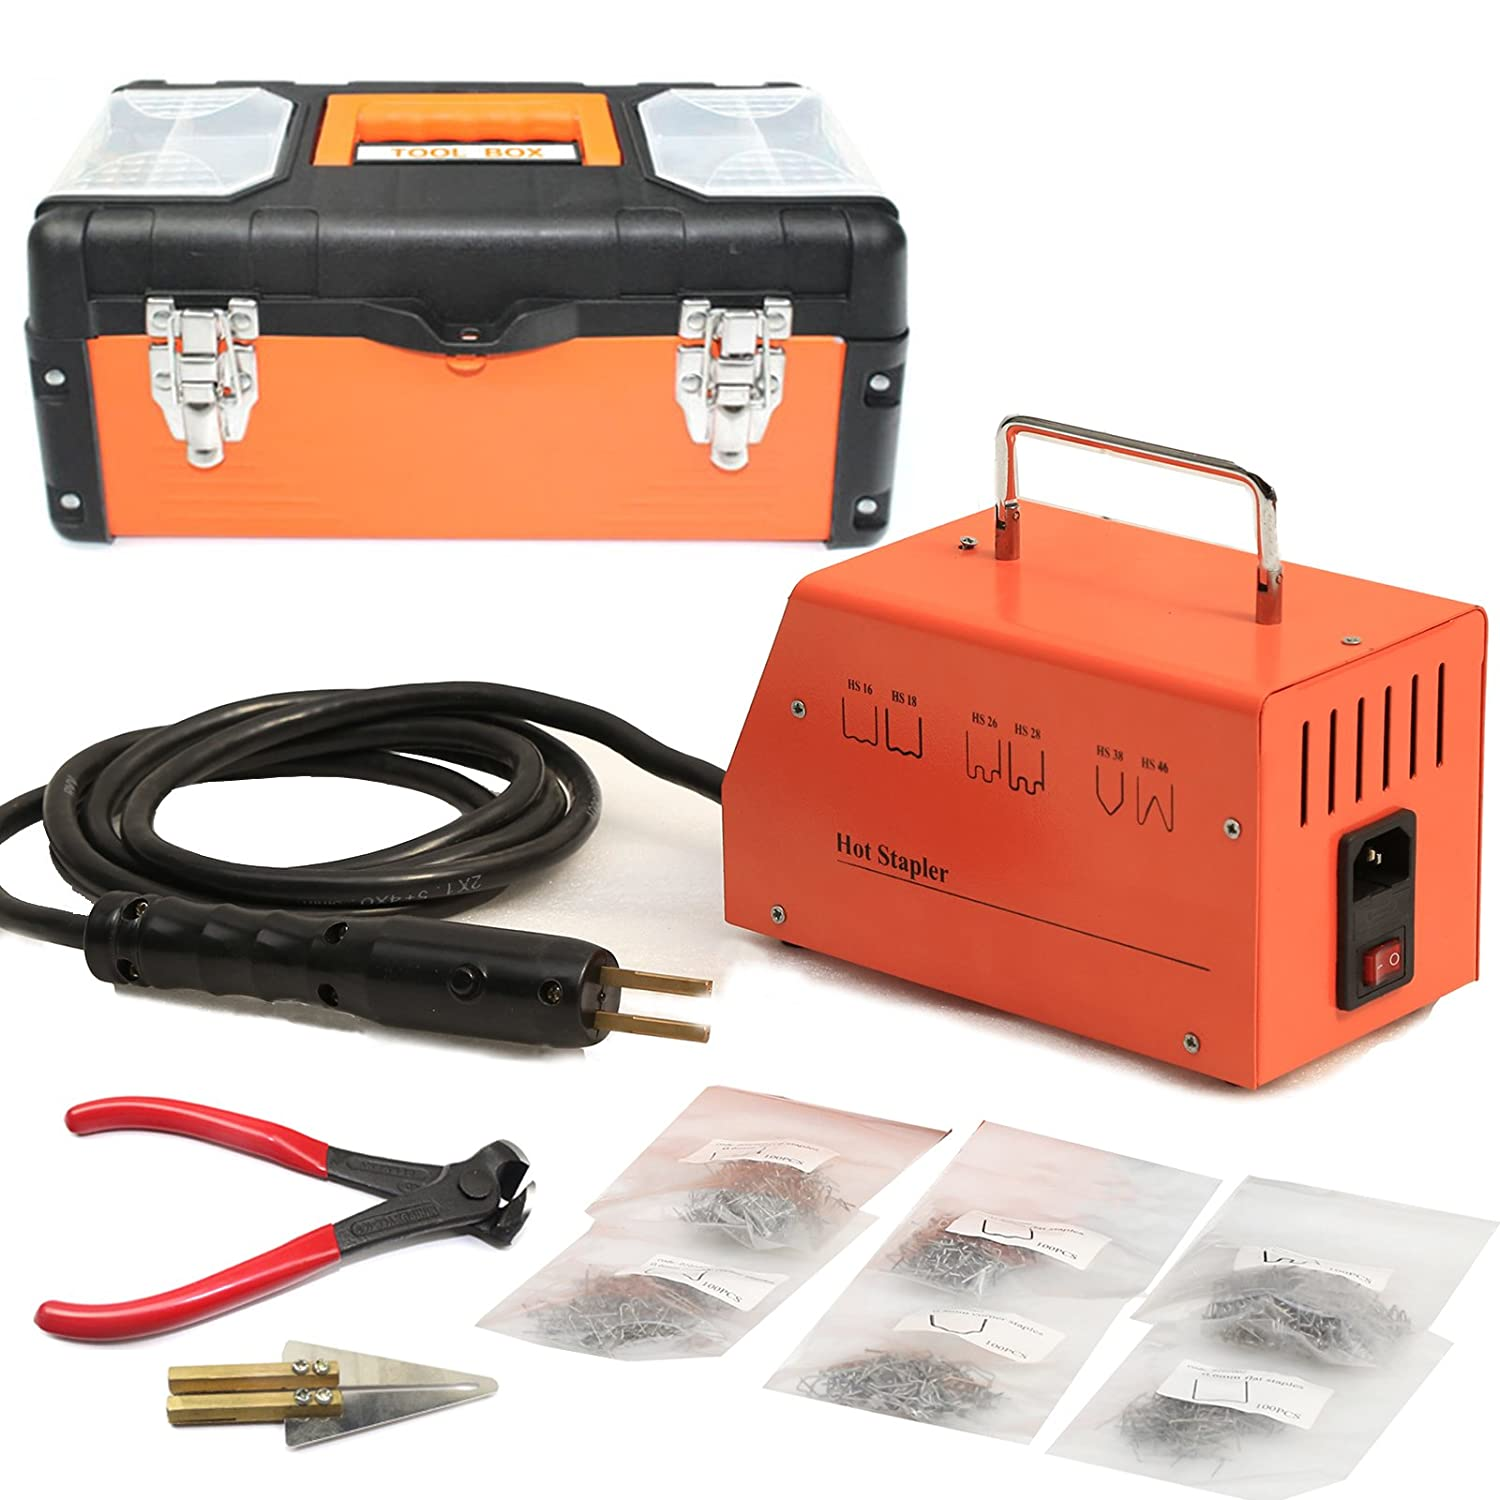 BELEY Car Bumper Repair Plastic Welder Kit, 110V Hot Stapler Plastic Welding Gun Machine with 600PCS Staples